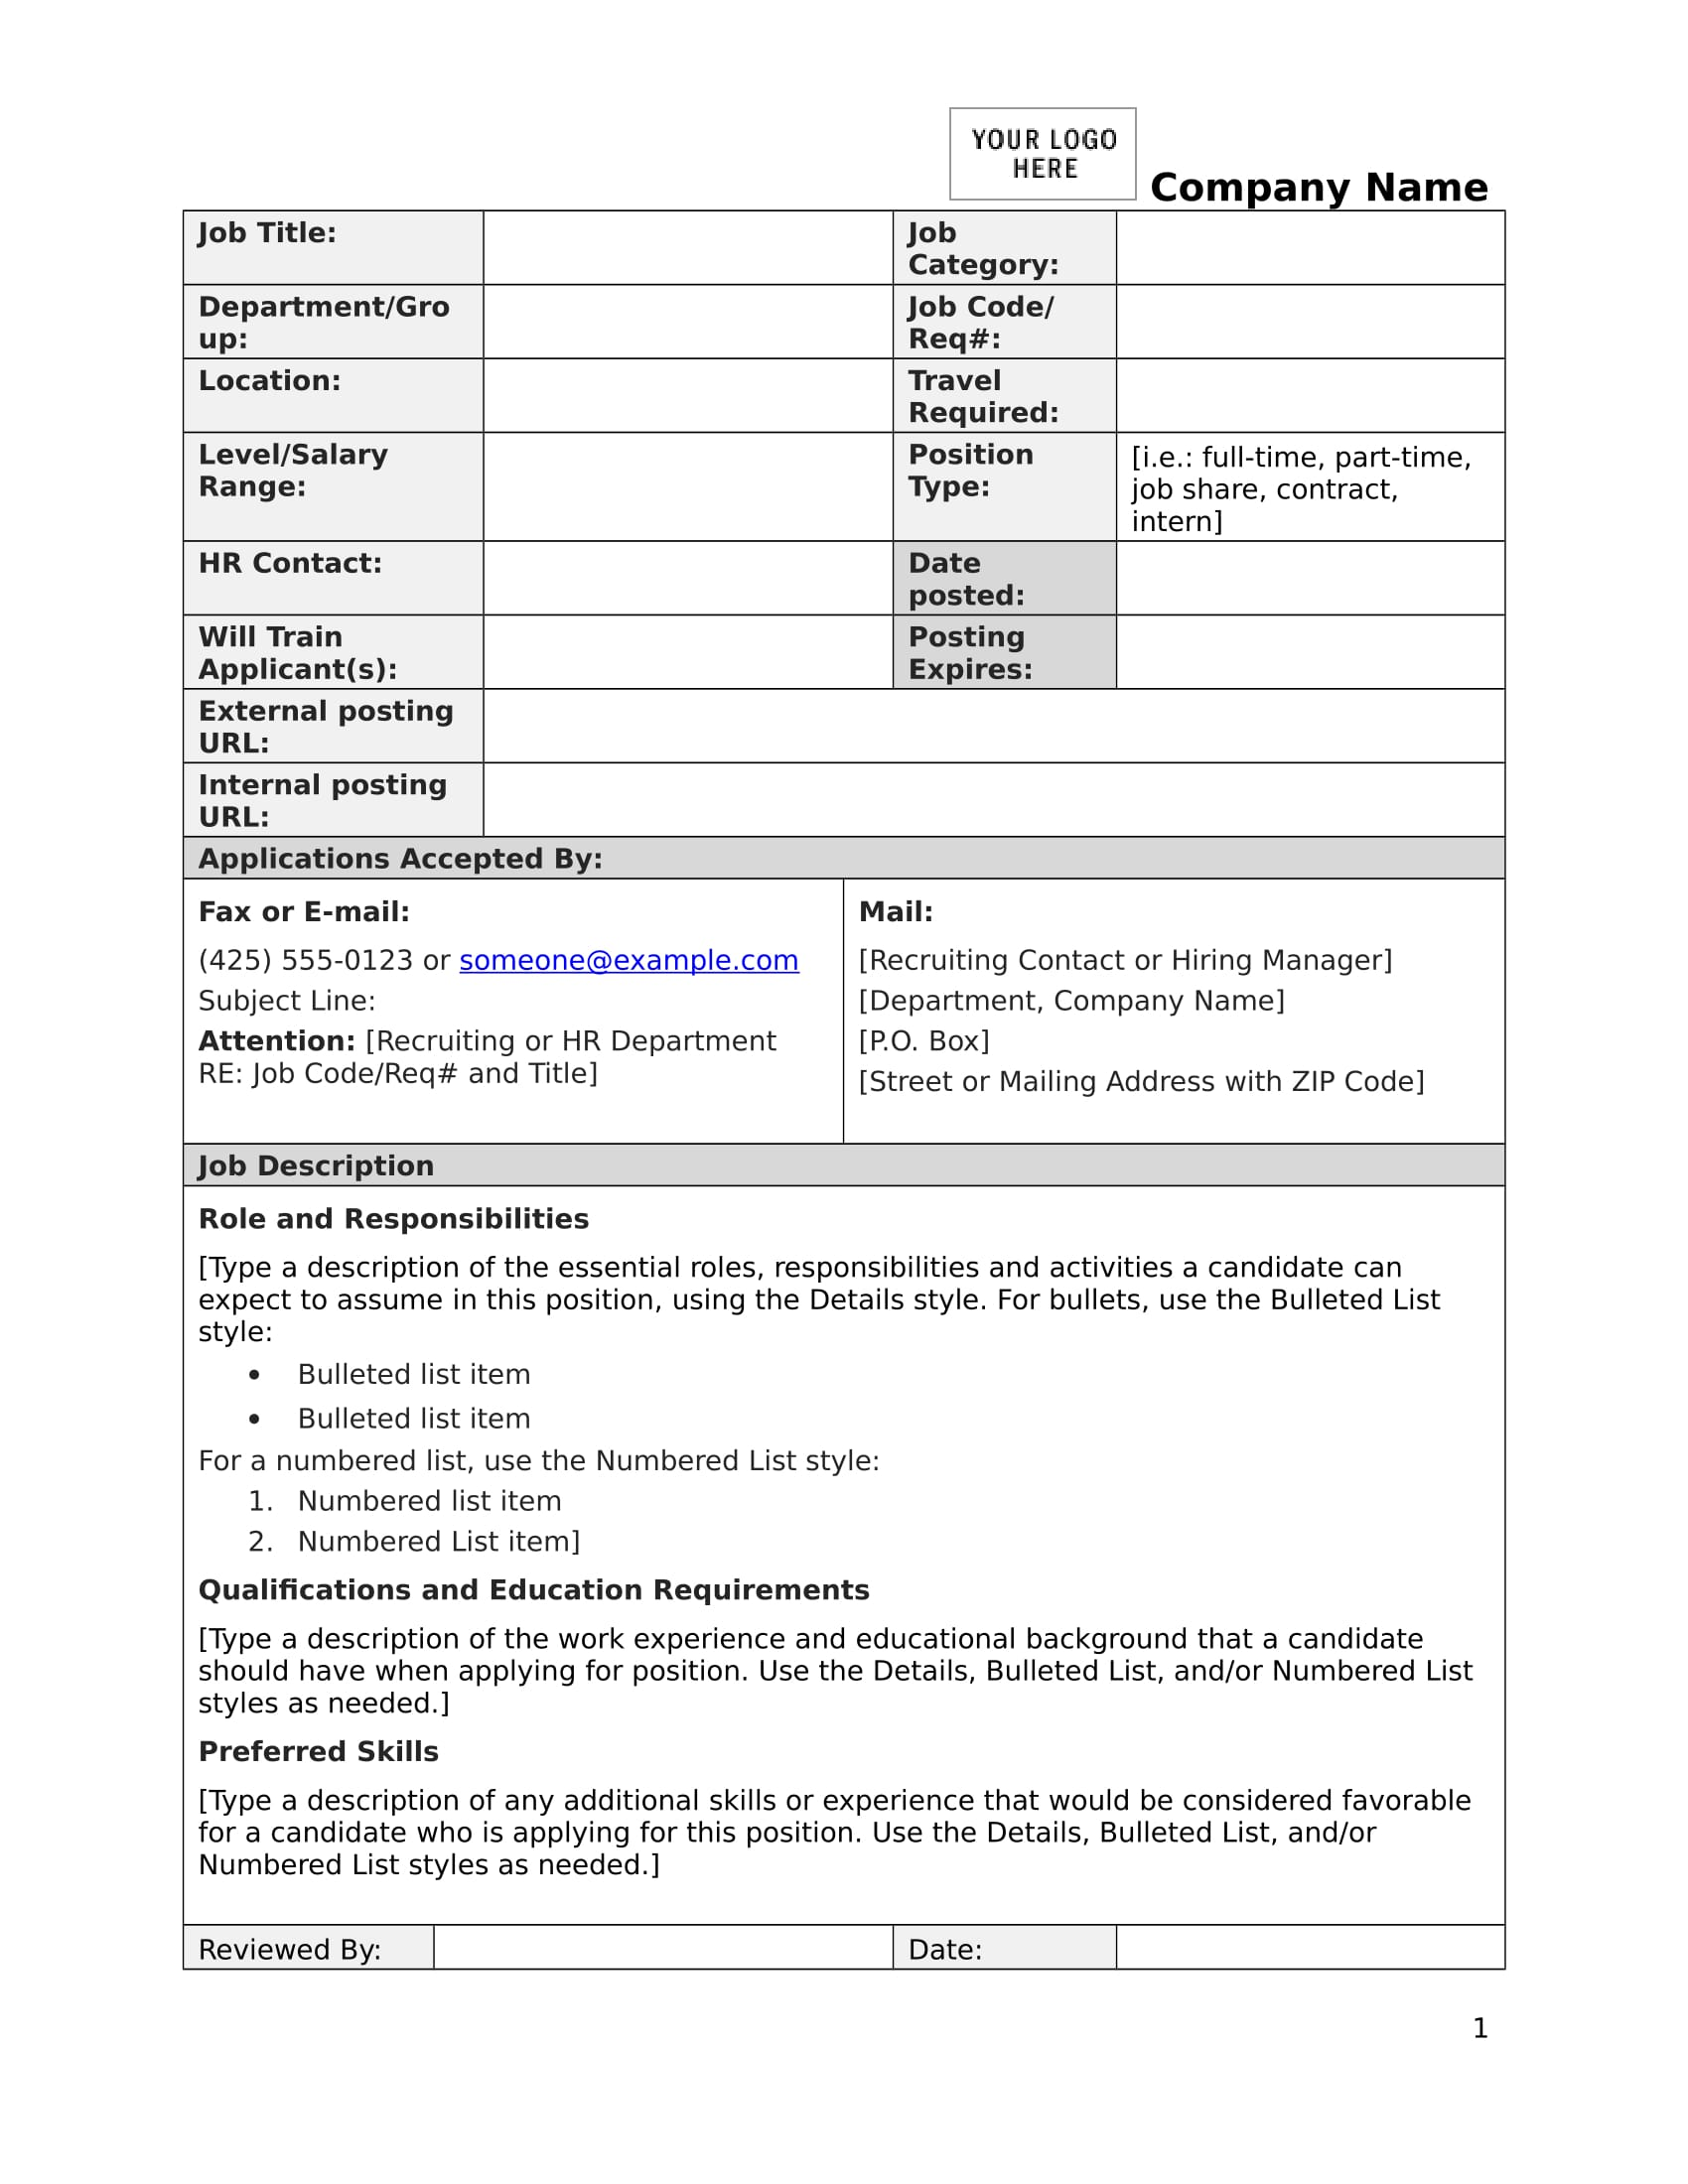 job description form sample 1